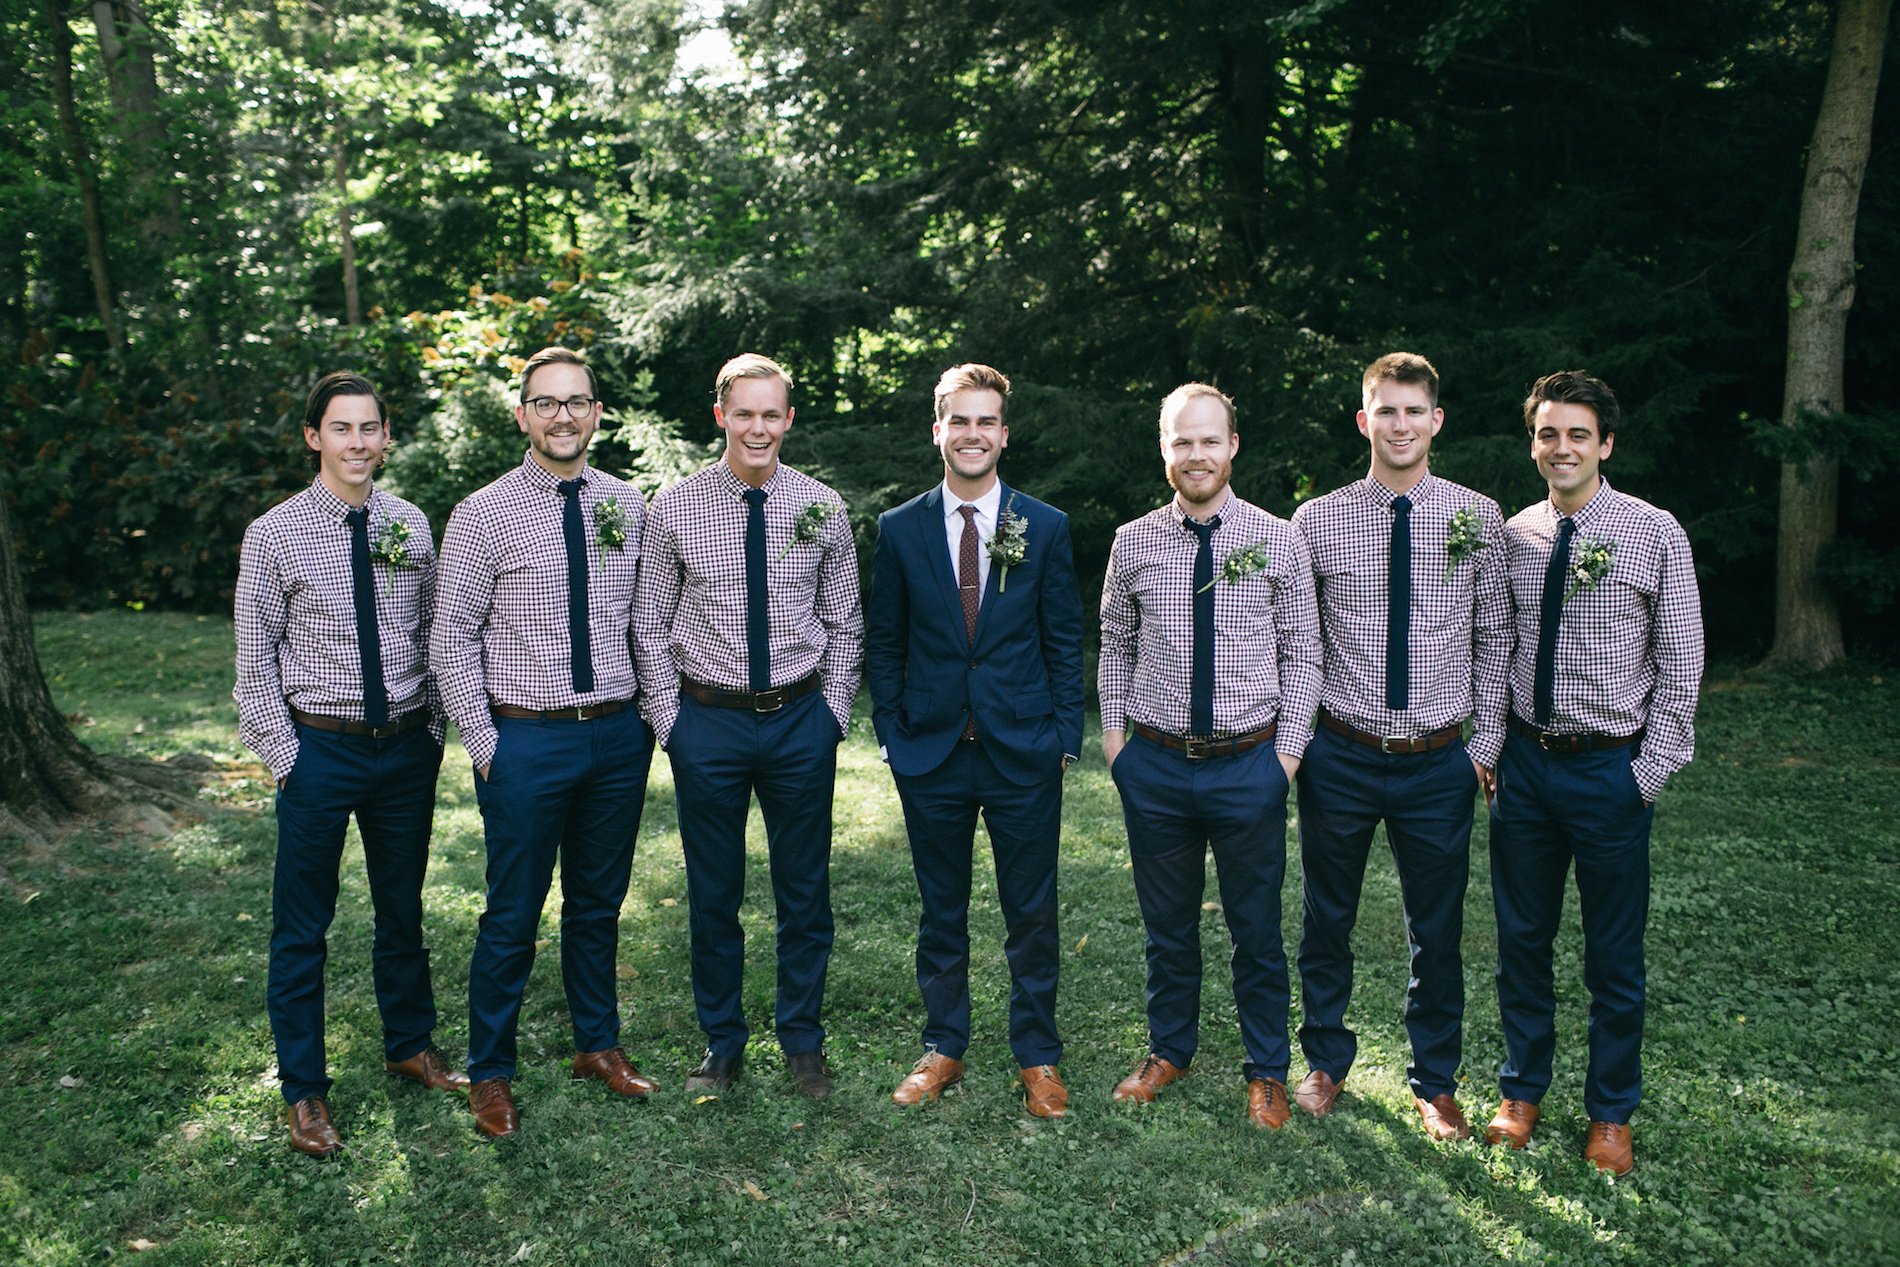 chic-marquee-wedding-lang-thomas-photography-6